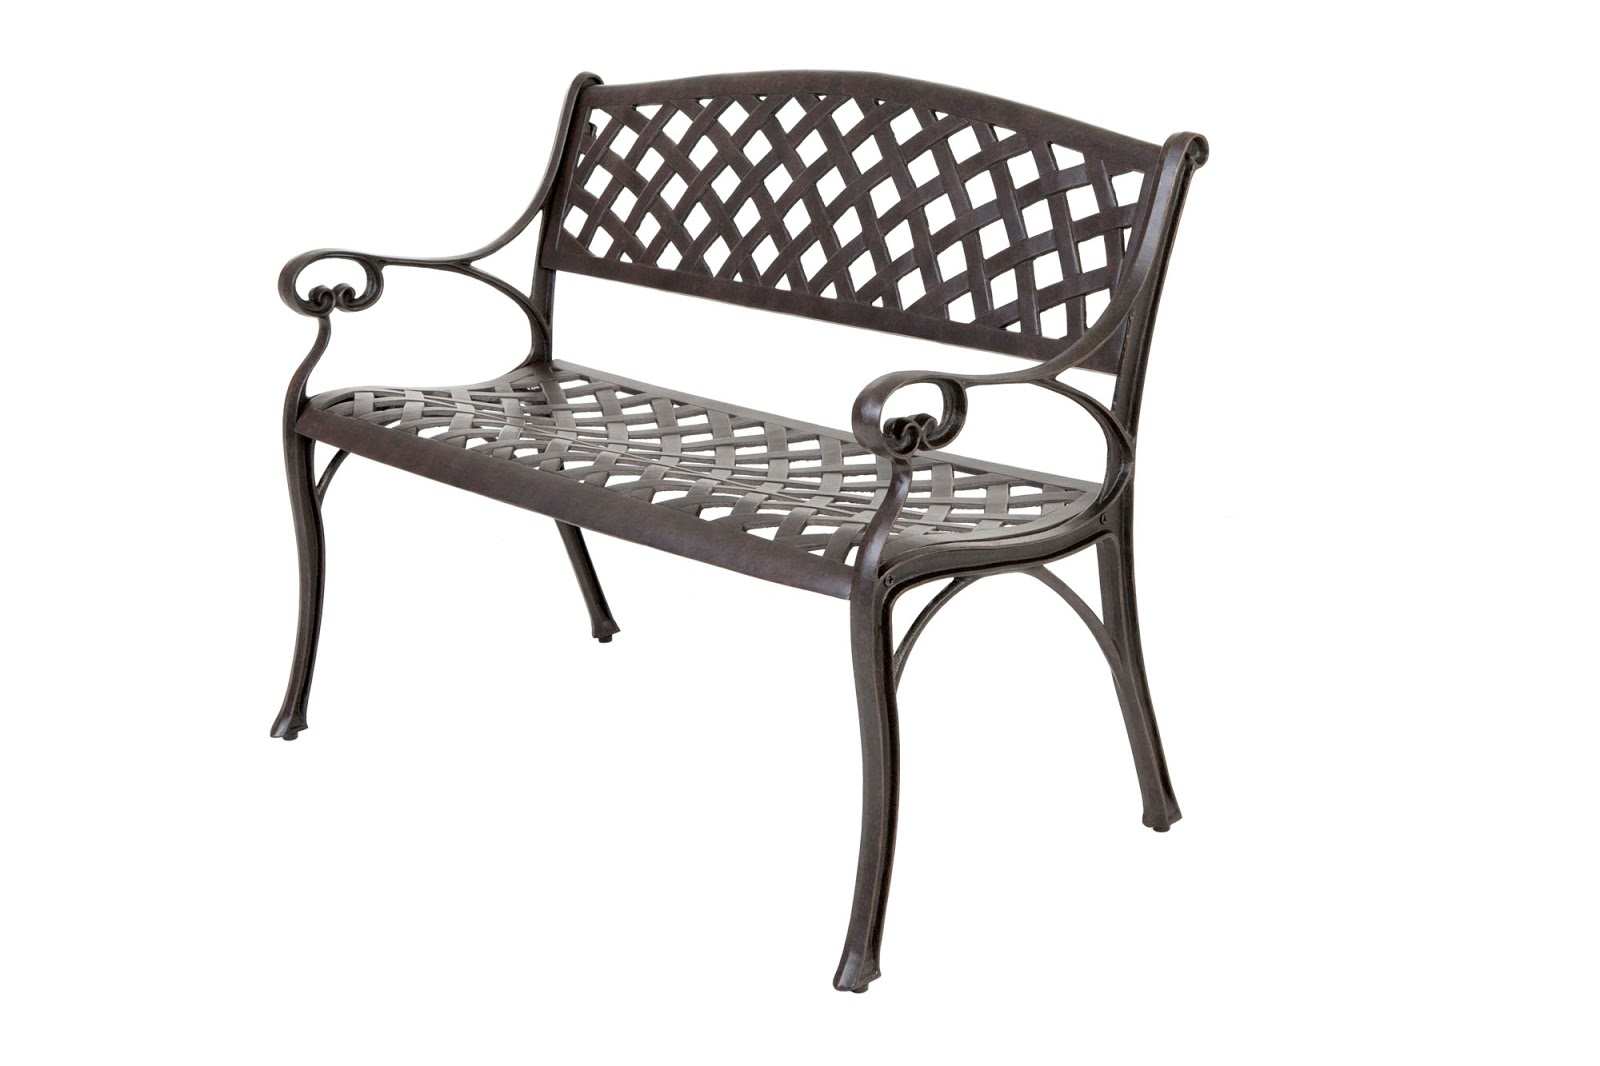 Free UK Outside Edge Garden Furniture Blog: Free Cast Aluminium Garden